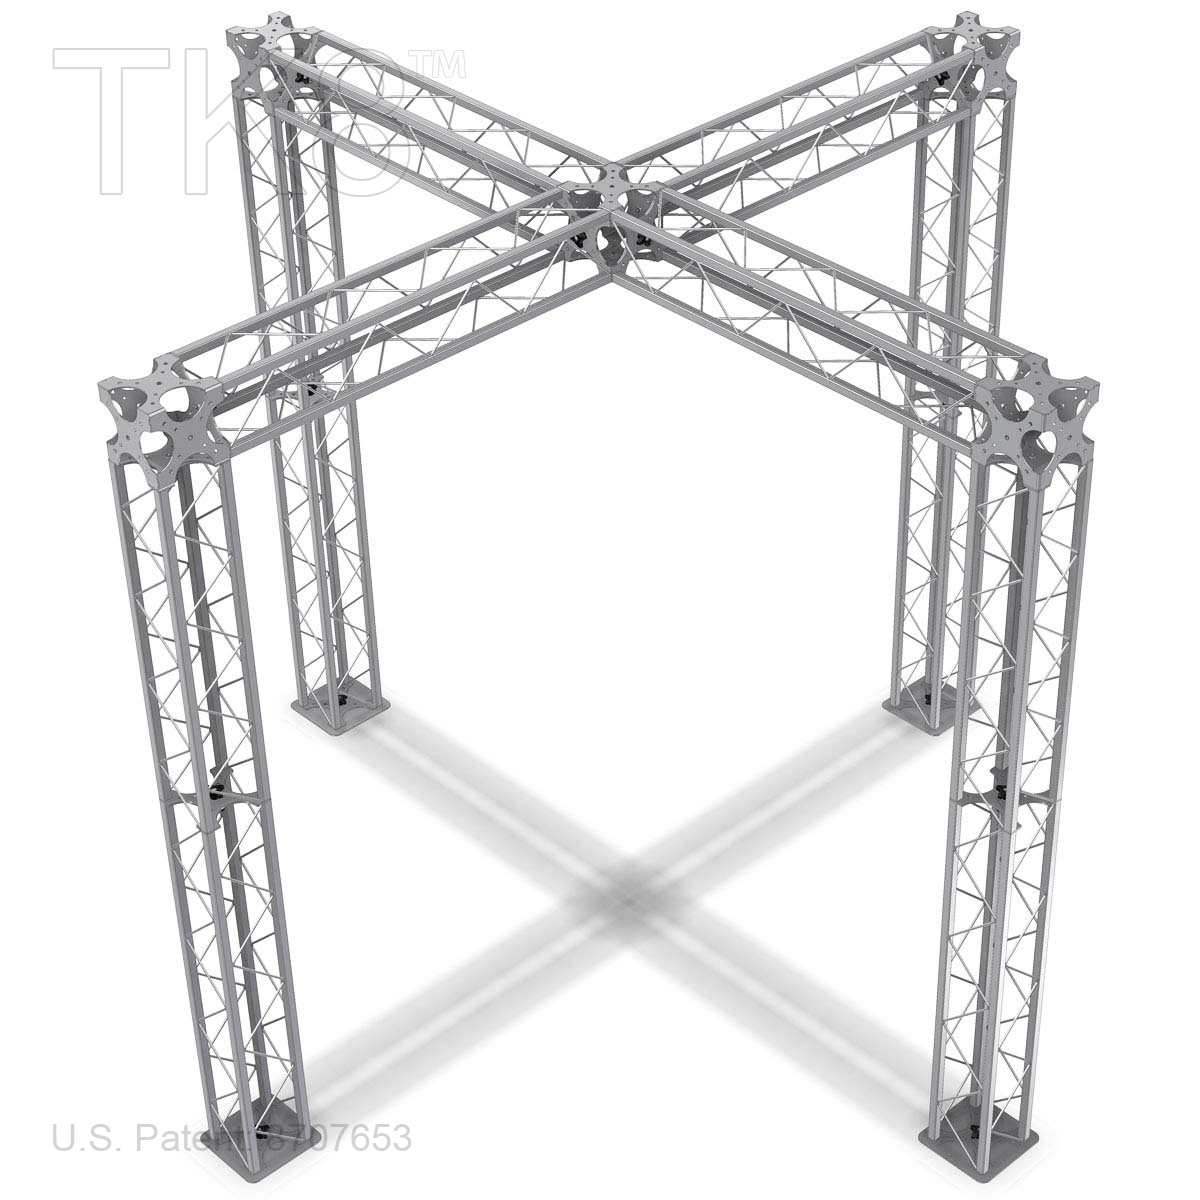 AIDEN - 10FT X 10FT TK8 ALUMINUM BOX TRUSS BOOTH<BR>[FRAME ONLY]